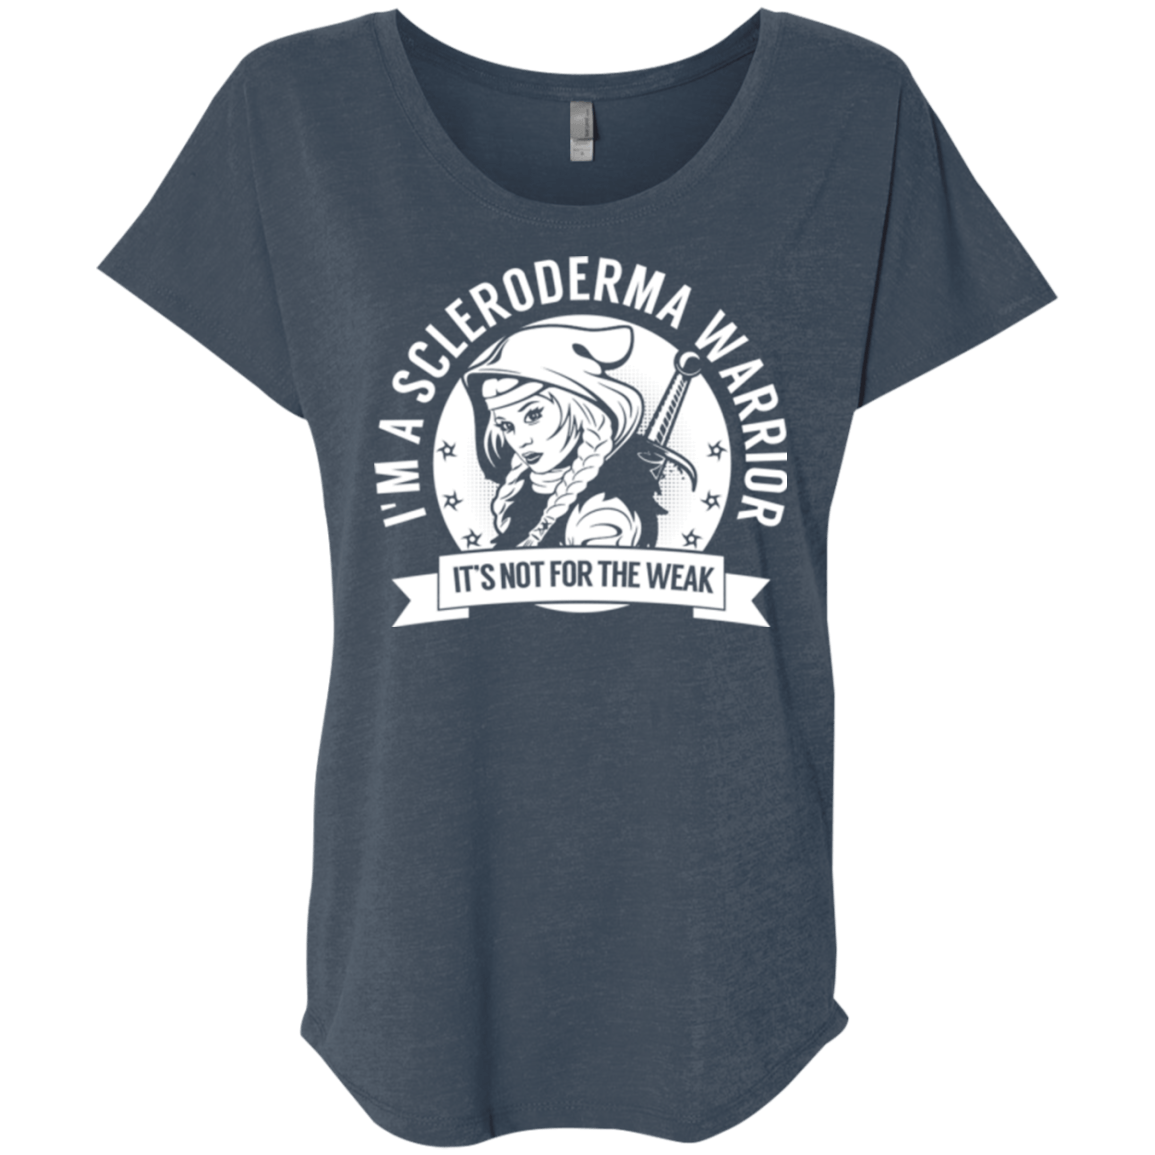 T-Shirts - Scleroderma Warrior Hooded Dolman Sleeve